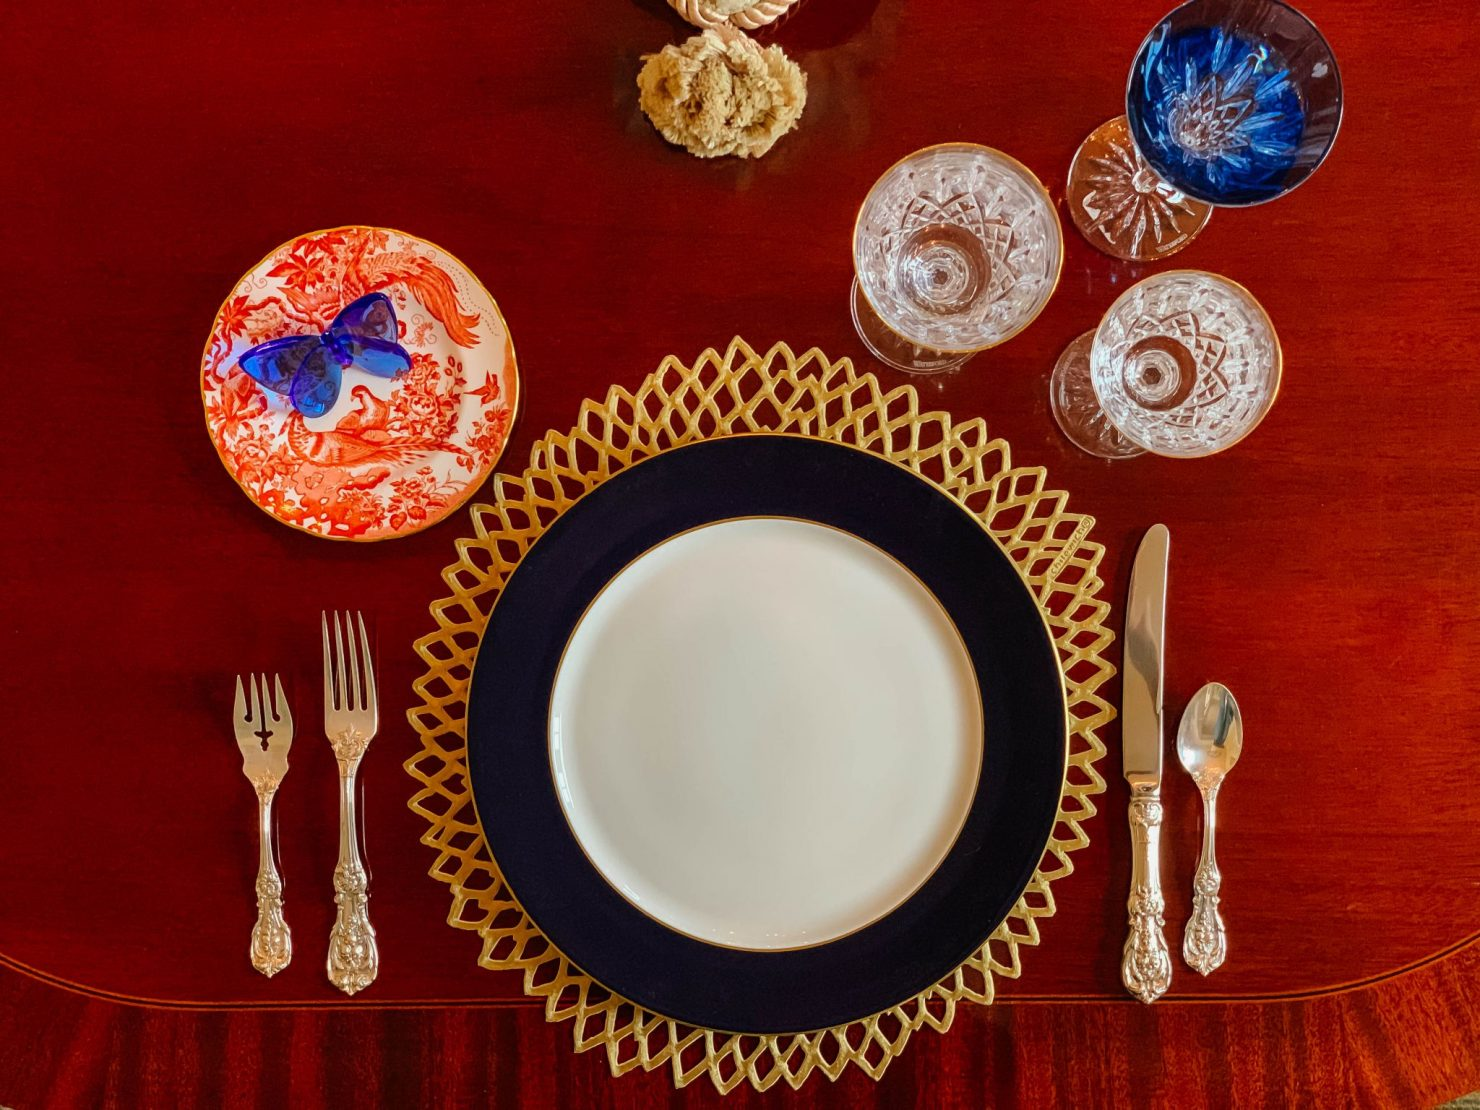 my china from Bering's